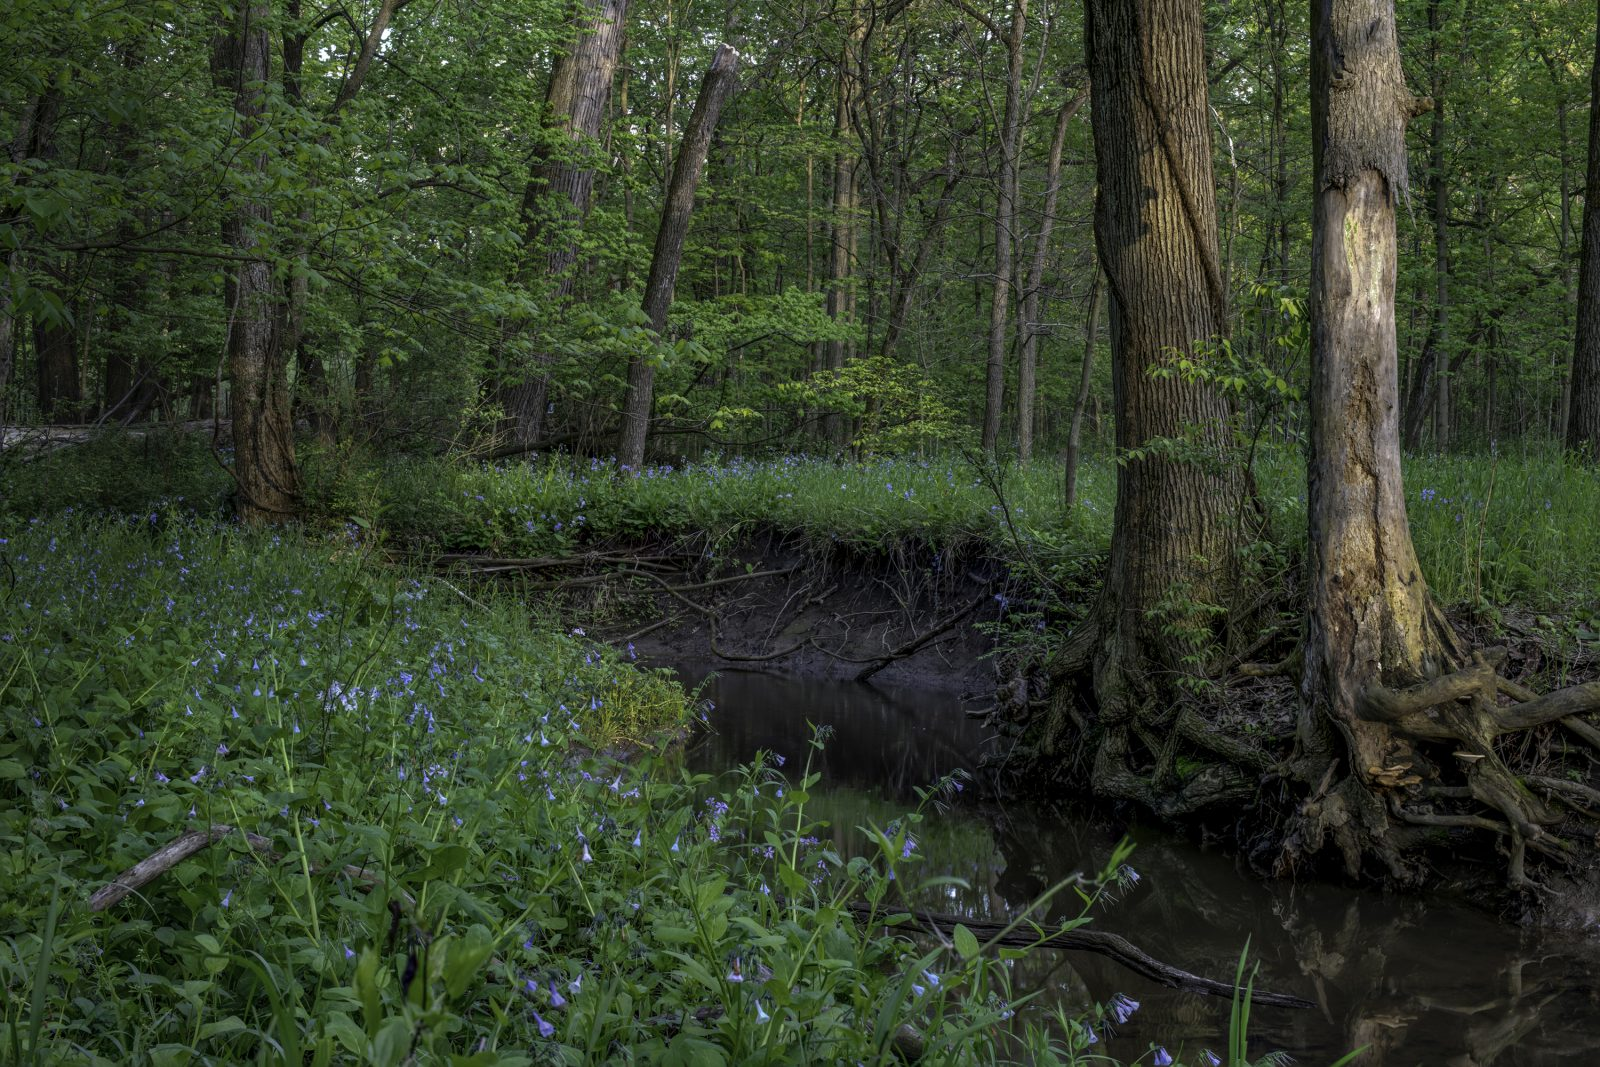 Bluebells Sparkling like Jewels in the Forest